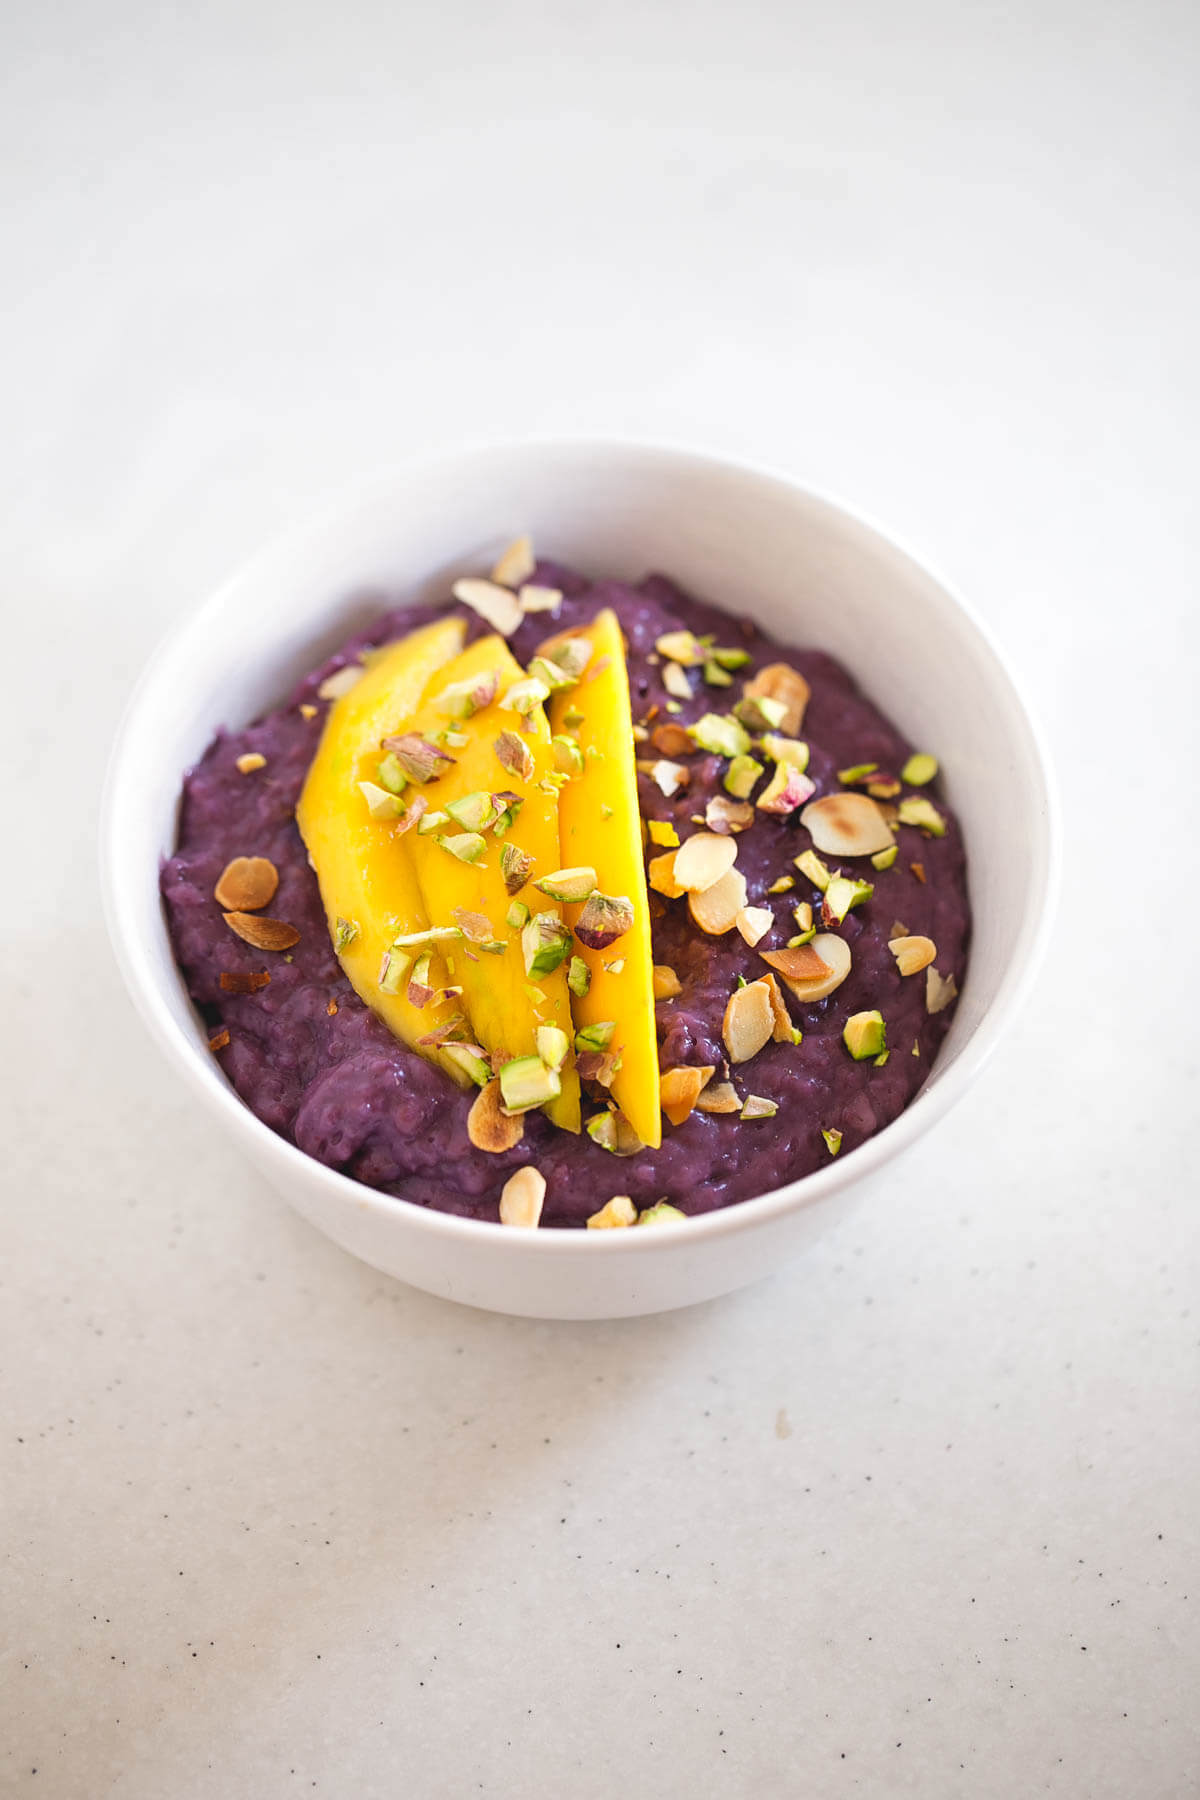 Vegan Blueberry Porridge: Oatmeal porridge is my breakfast of choice, along with green juices and smoothies. There are a thousand different recipes, but with blueberries, they are to die for.